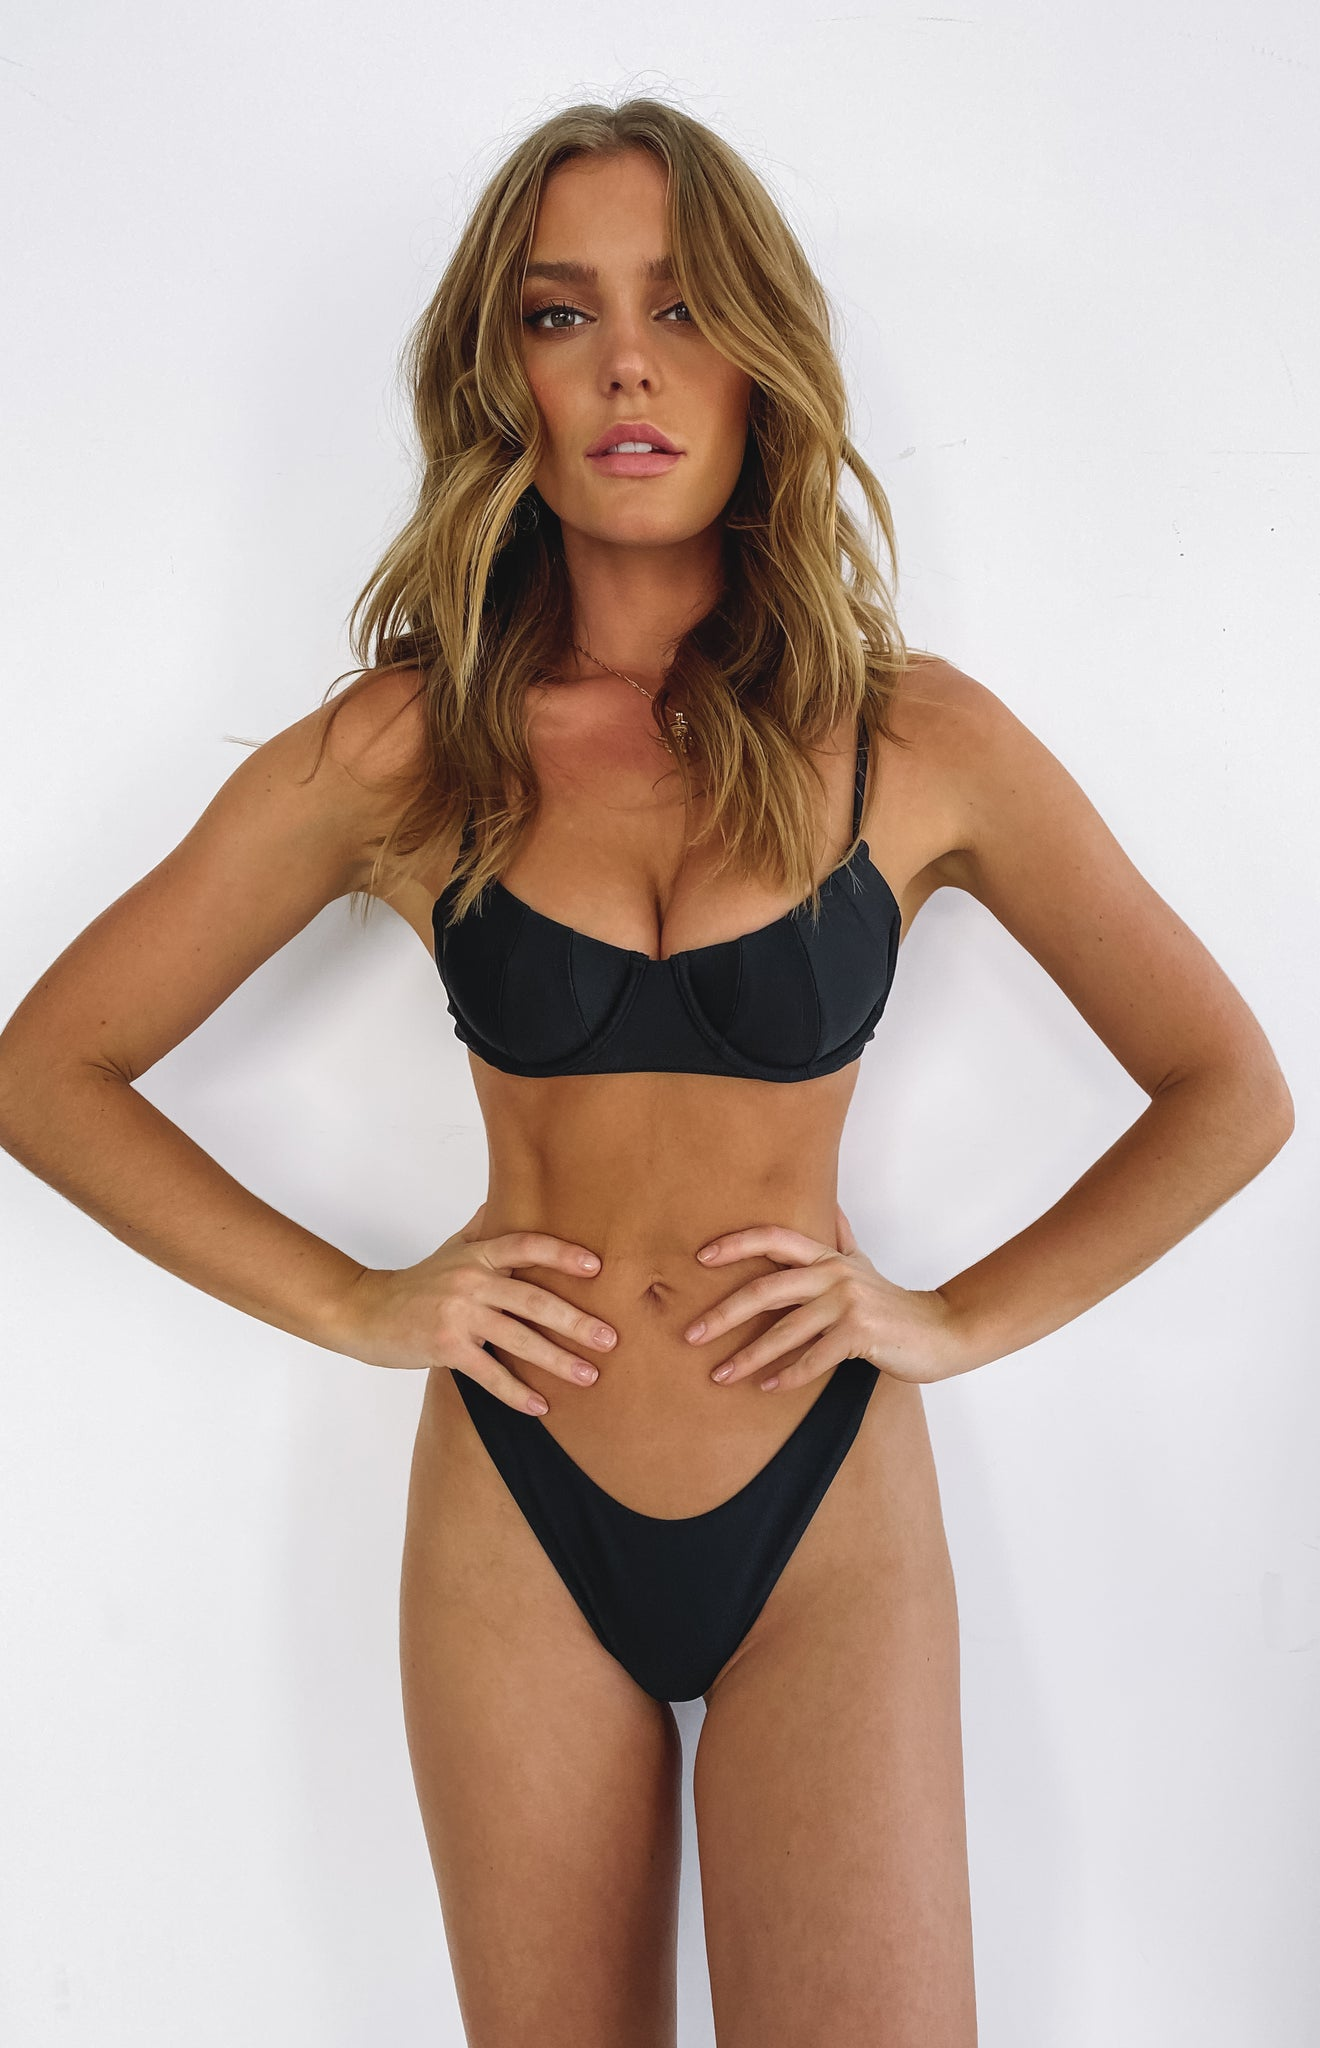 https://files.beginningboutique.com.au/LAHANA+HELENA+PANELLED+BRA+CUP+BIKINI+TOP+BLACK.mp4